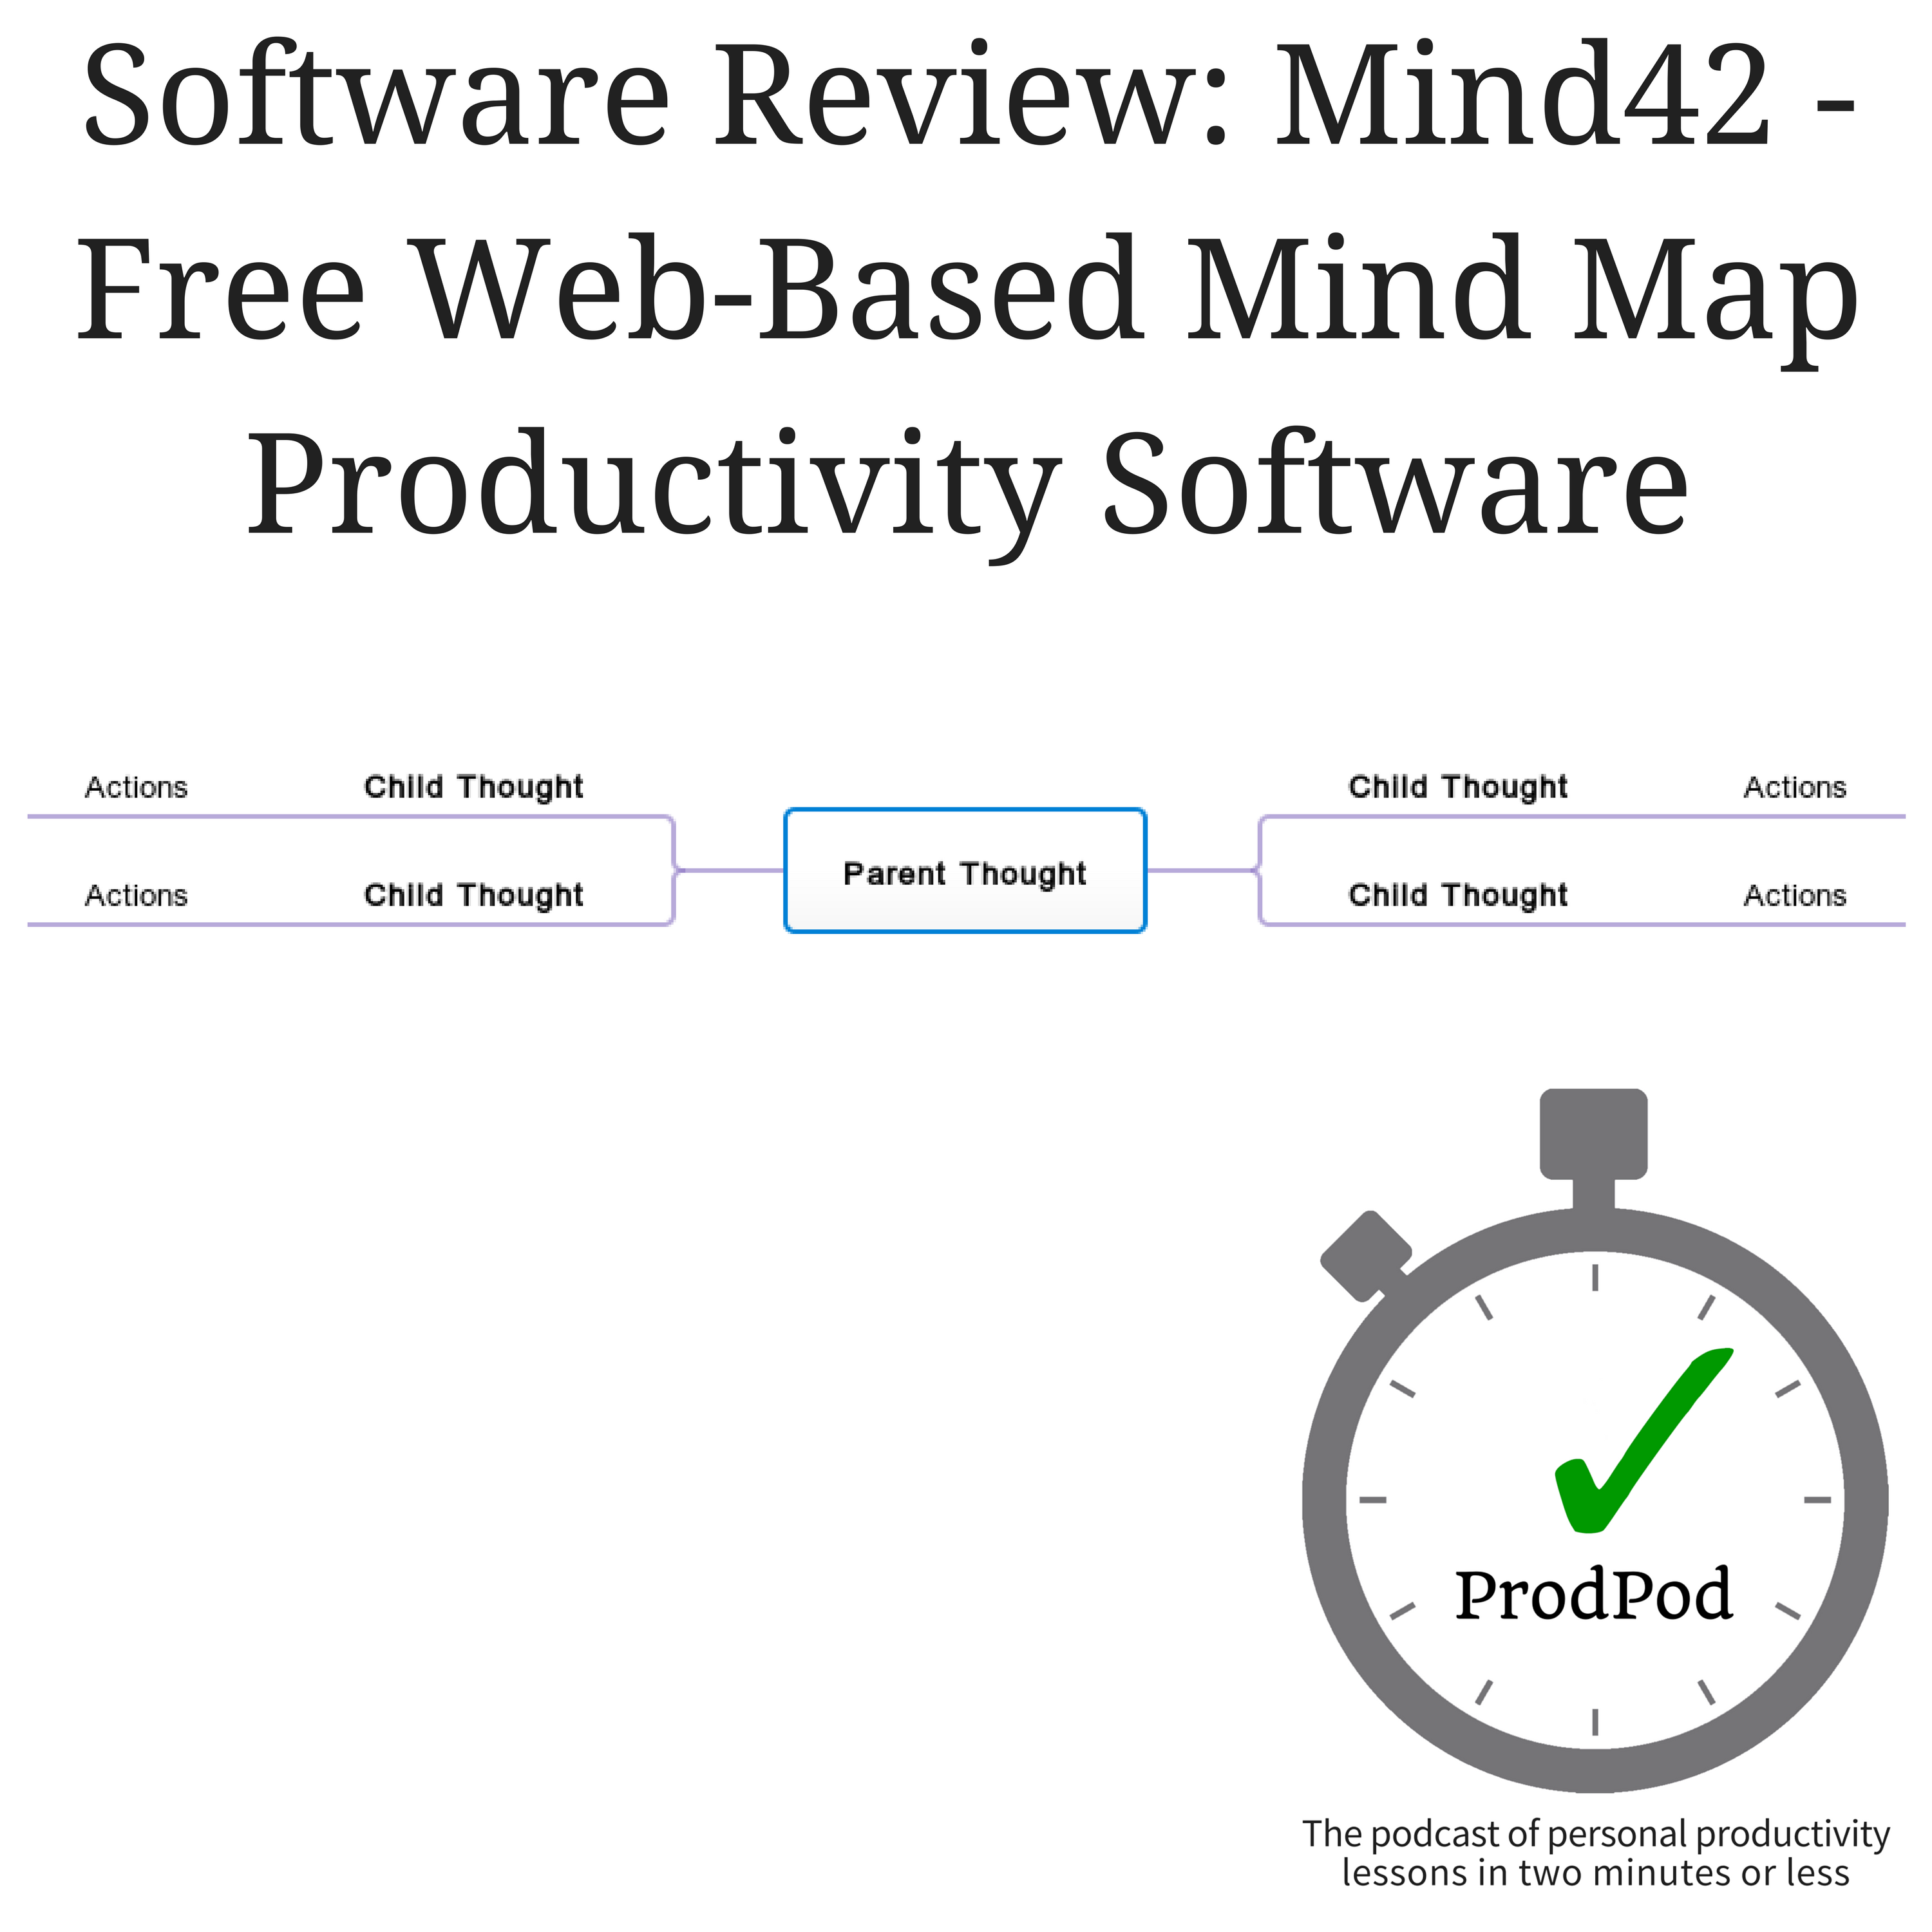 ProdPod: Episode 101 -- Software Review: Mind42 - Free Web-Based Mind Map Productivity Software